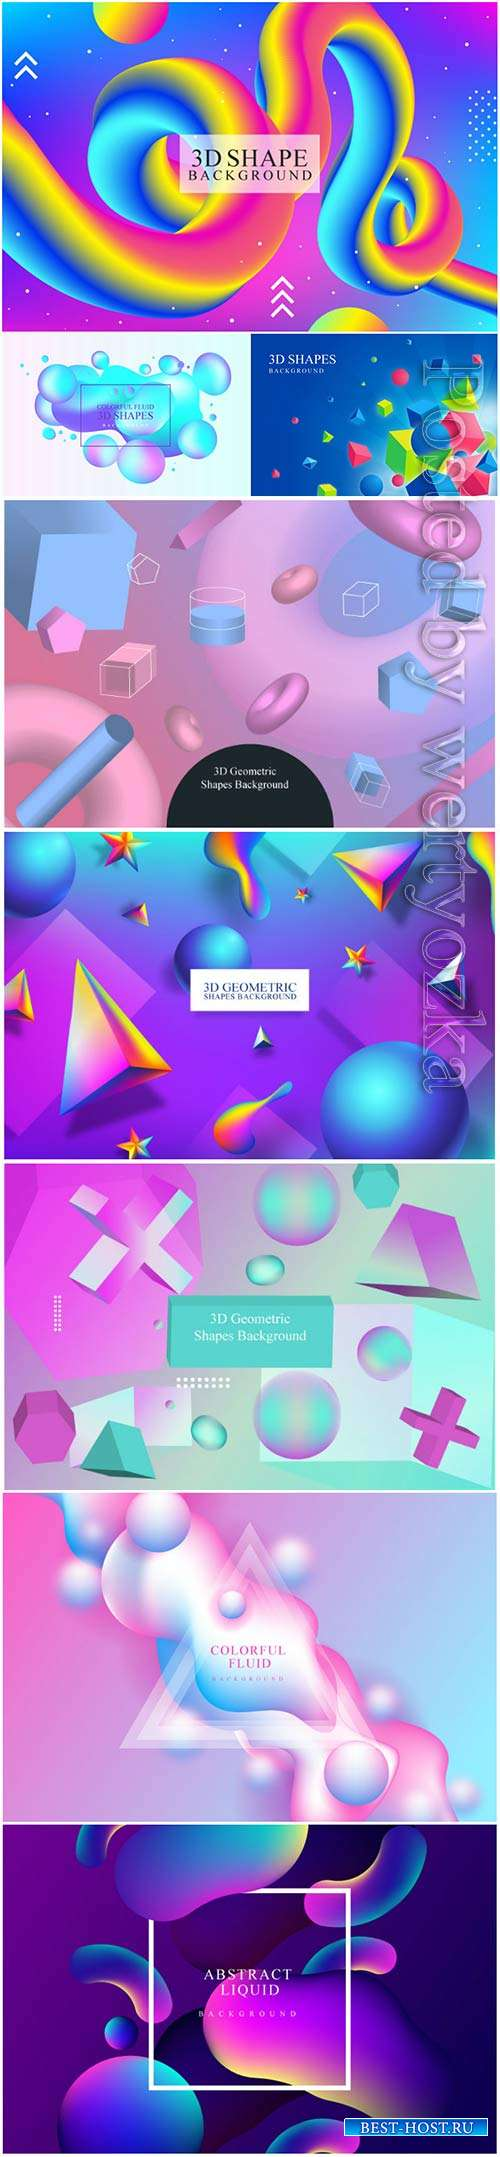 Colorful fluid 3d shape vector background